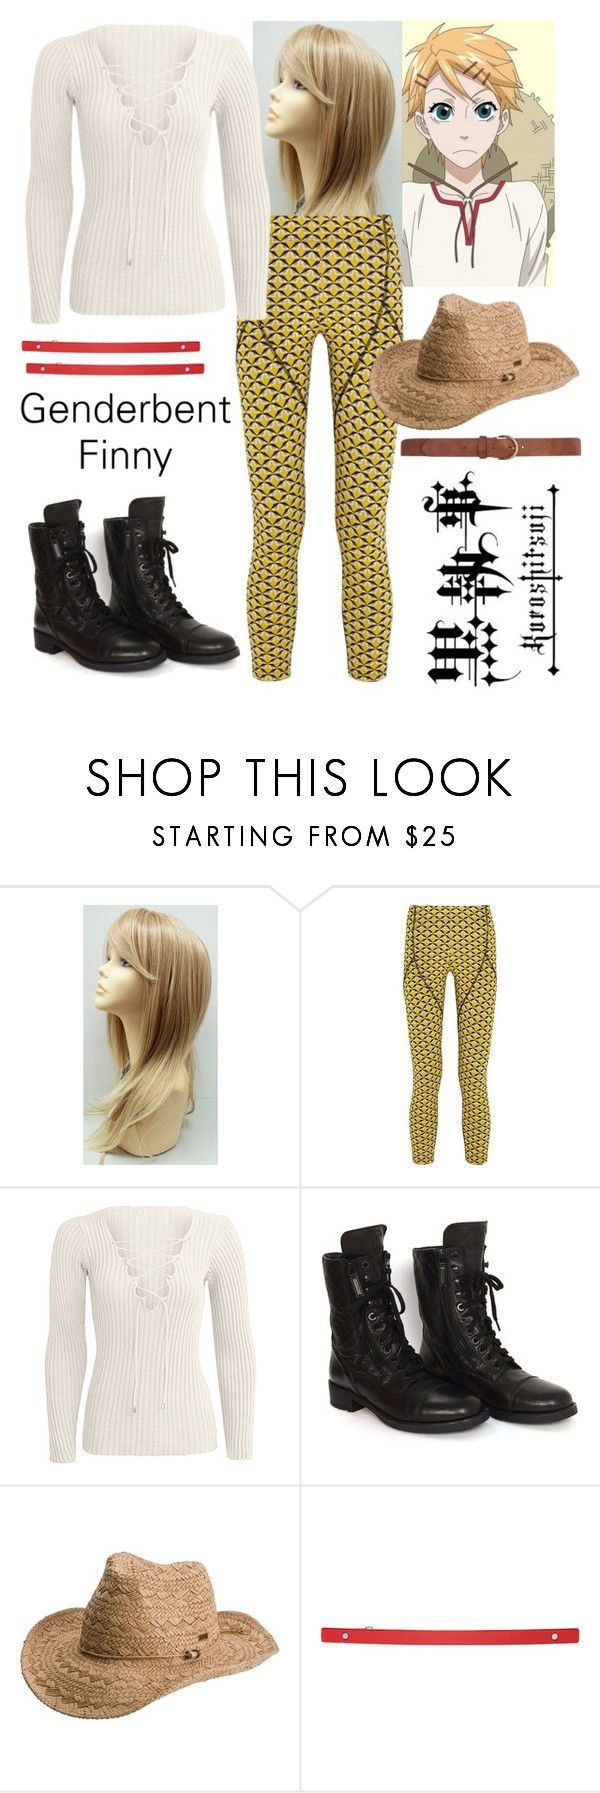 """""""Finnian - Black Butler"""" by mynameis-secret ❤ liked on Polyvore featuring Fendi, Chanel, Roxy, HAIR DESIGNACCESS and Dorothy Perkins"""